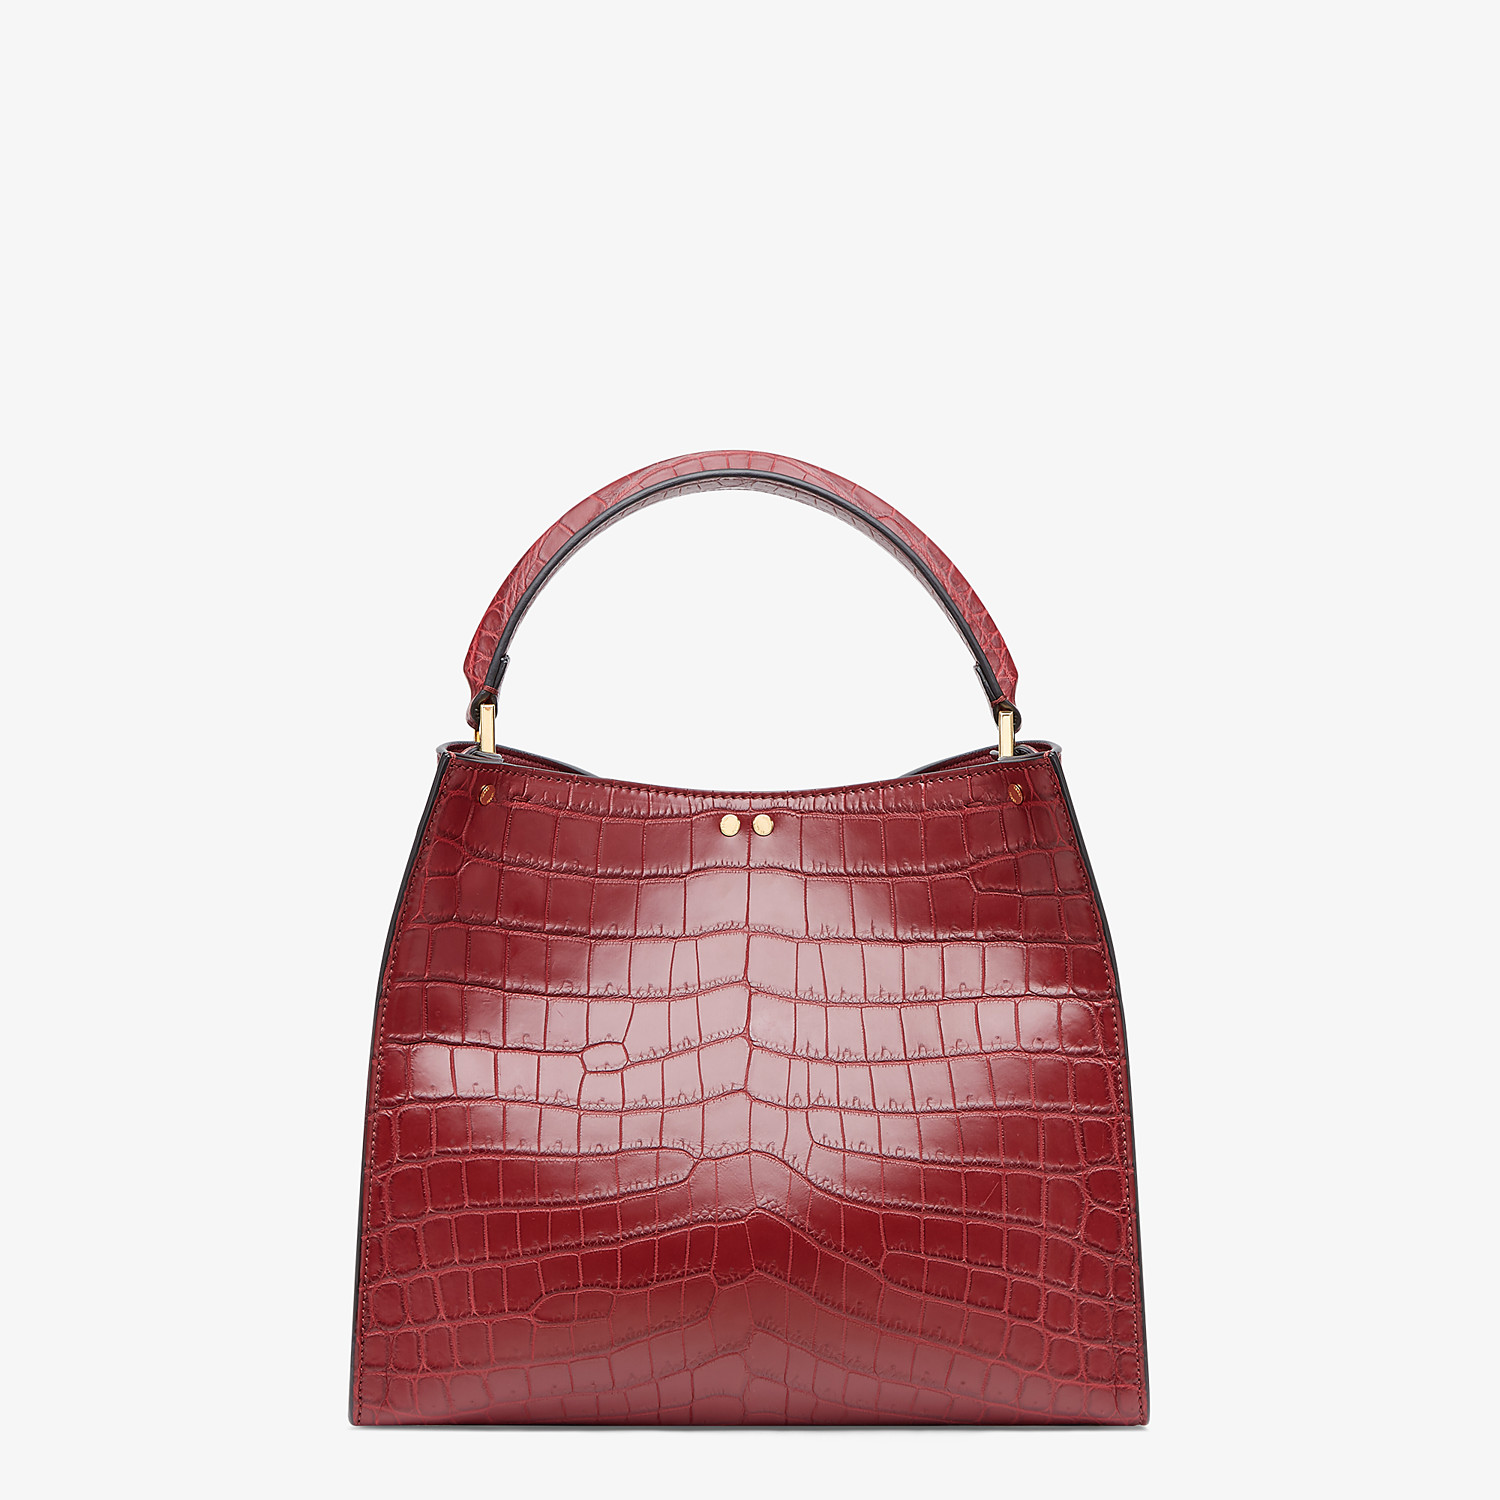 FENDI PEEKABOO X-LITE MEDIUM - Burgundy crocodile leather bag - view 4 detail